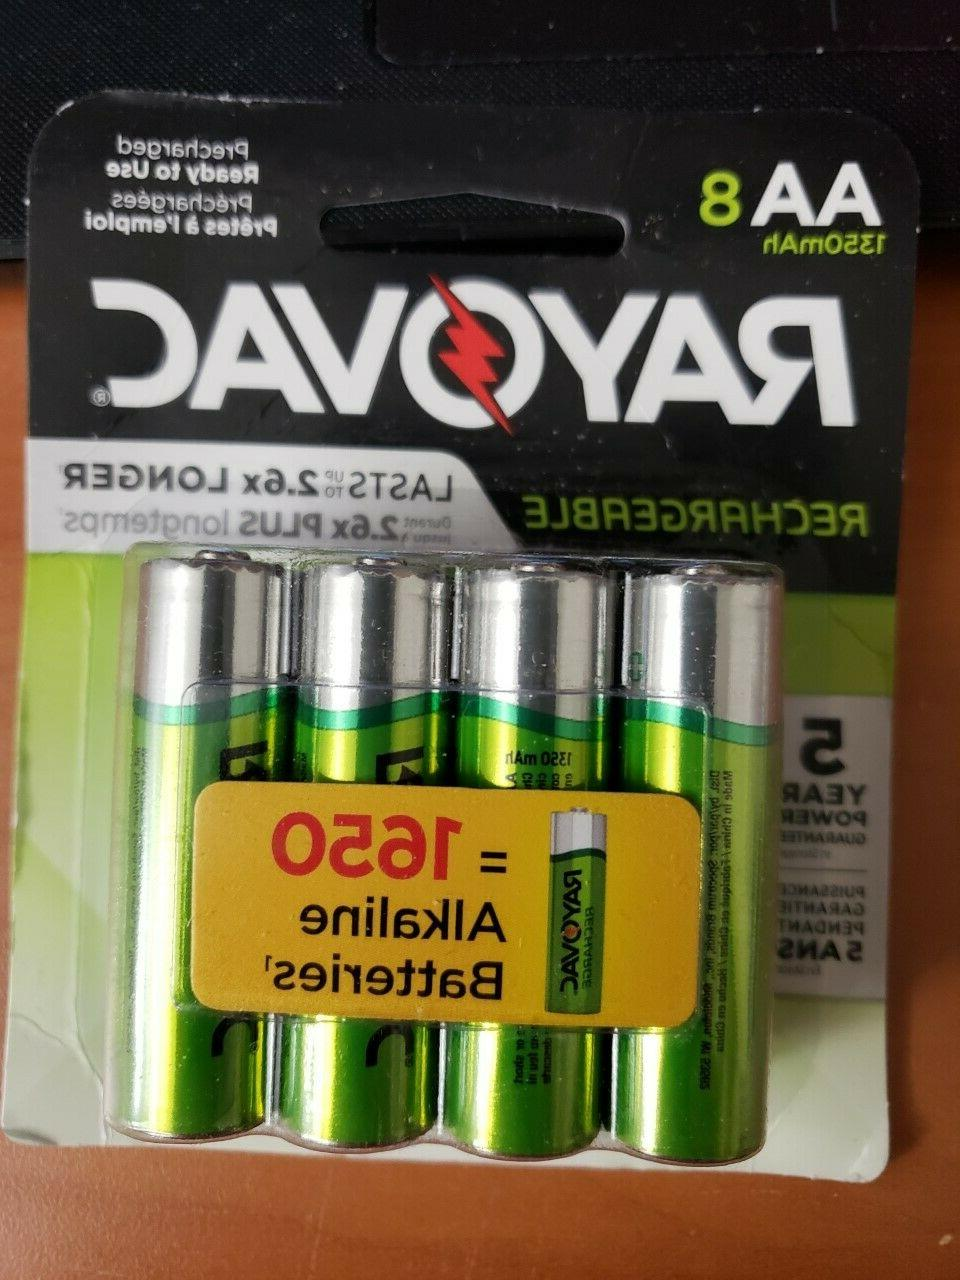 RAYOVAC AA 8-Pack RECHARGEABLE Batteries, LD715-8OP GENE